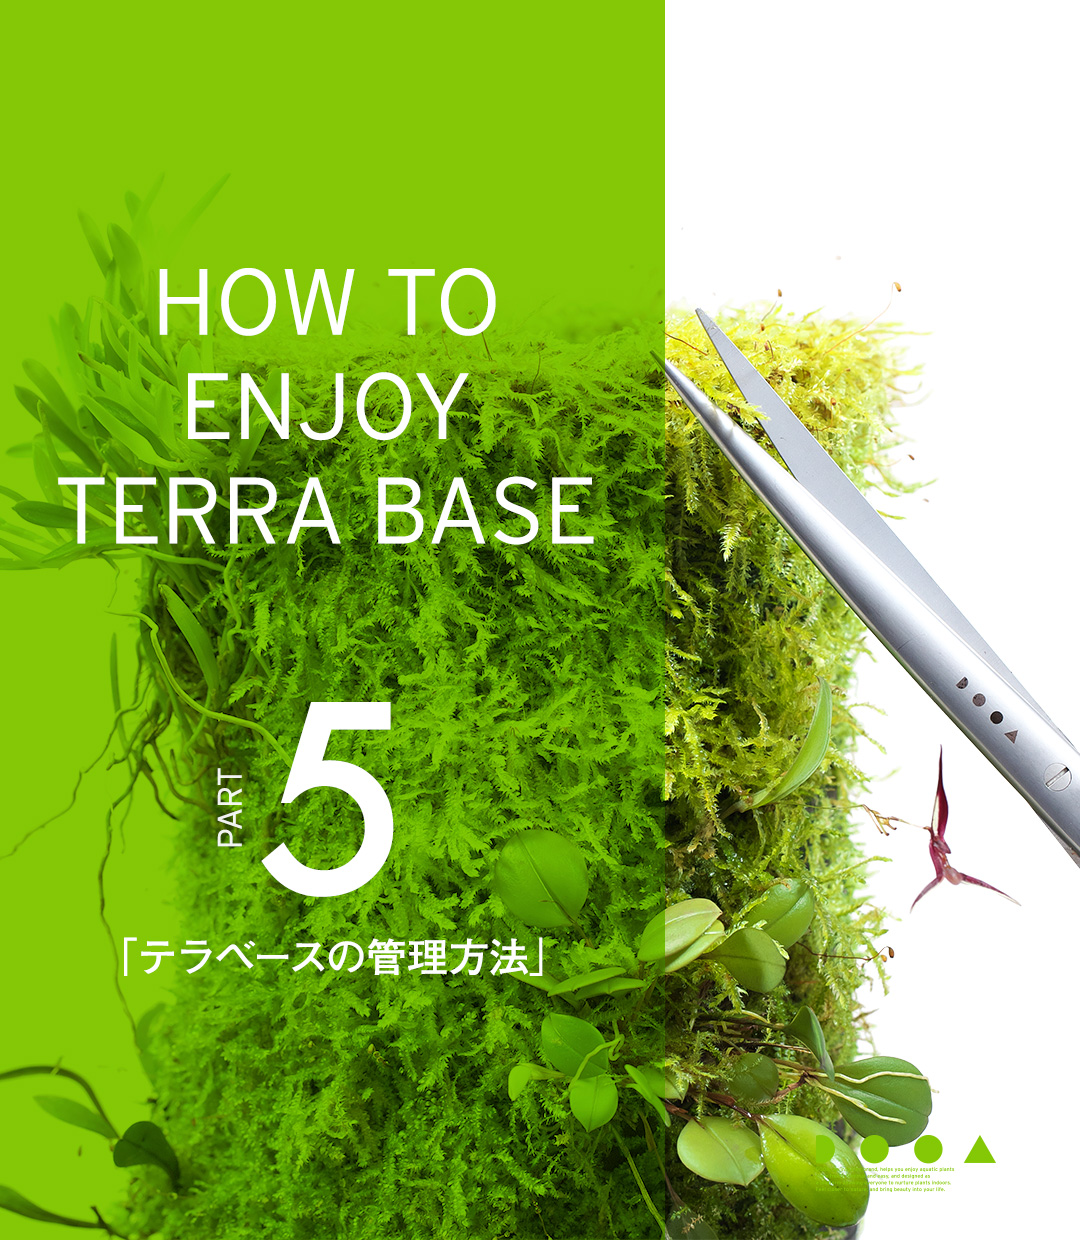 HOW TO ENJOY TERRA BASE PART5「テラベースの管理方法」